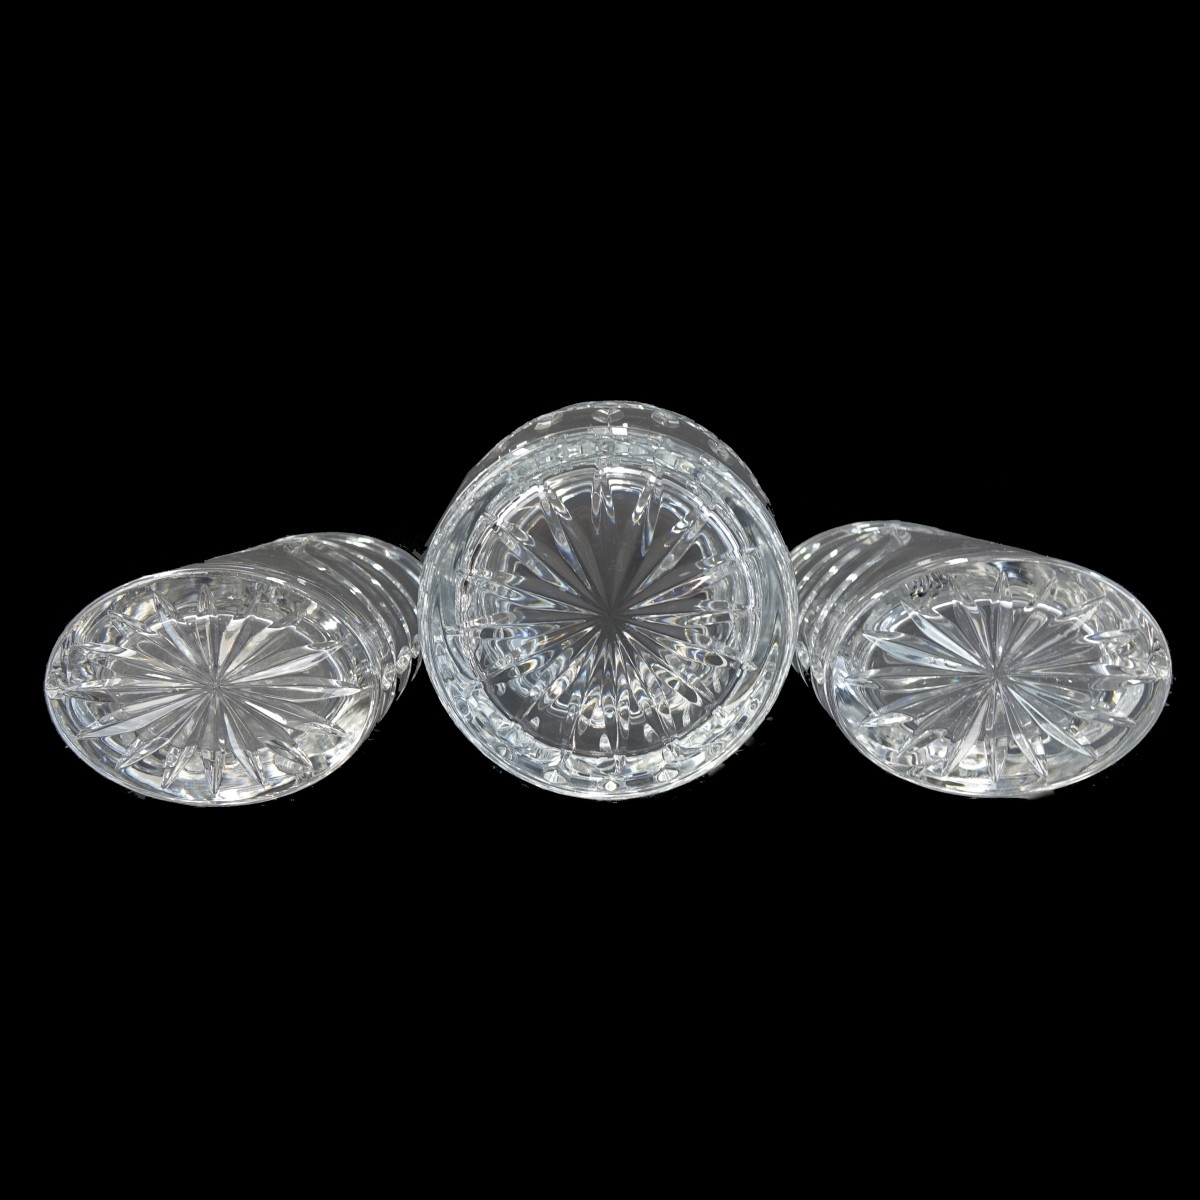 Three Waterford Crystal Table Articles